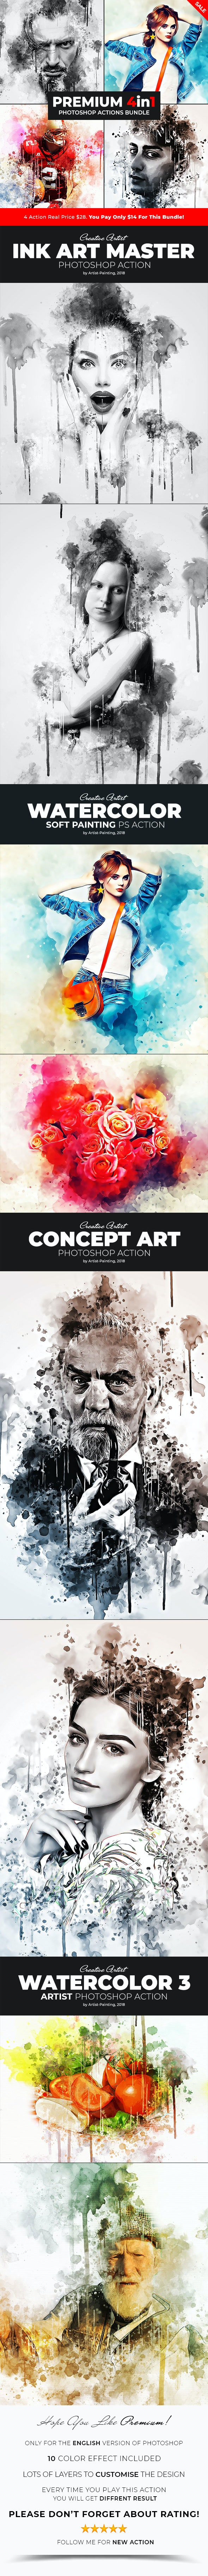 Premium - 4in1 Photoshop Actions Bundle - Photo Effects Actions